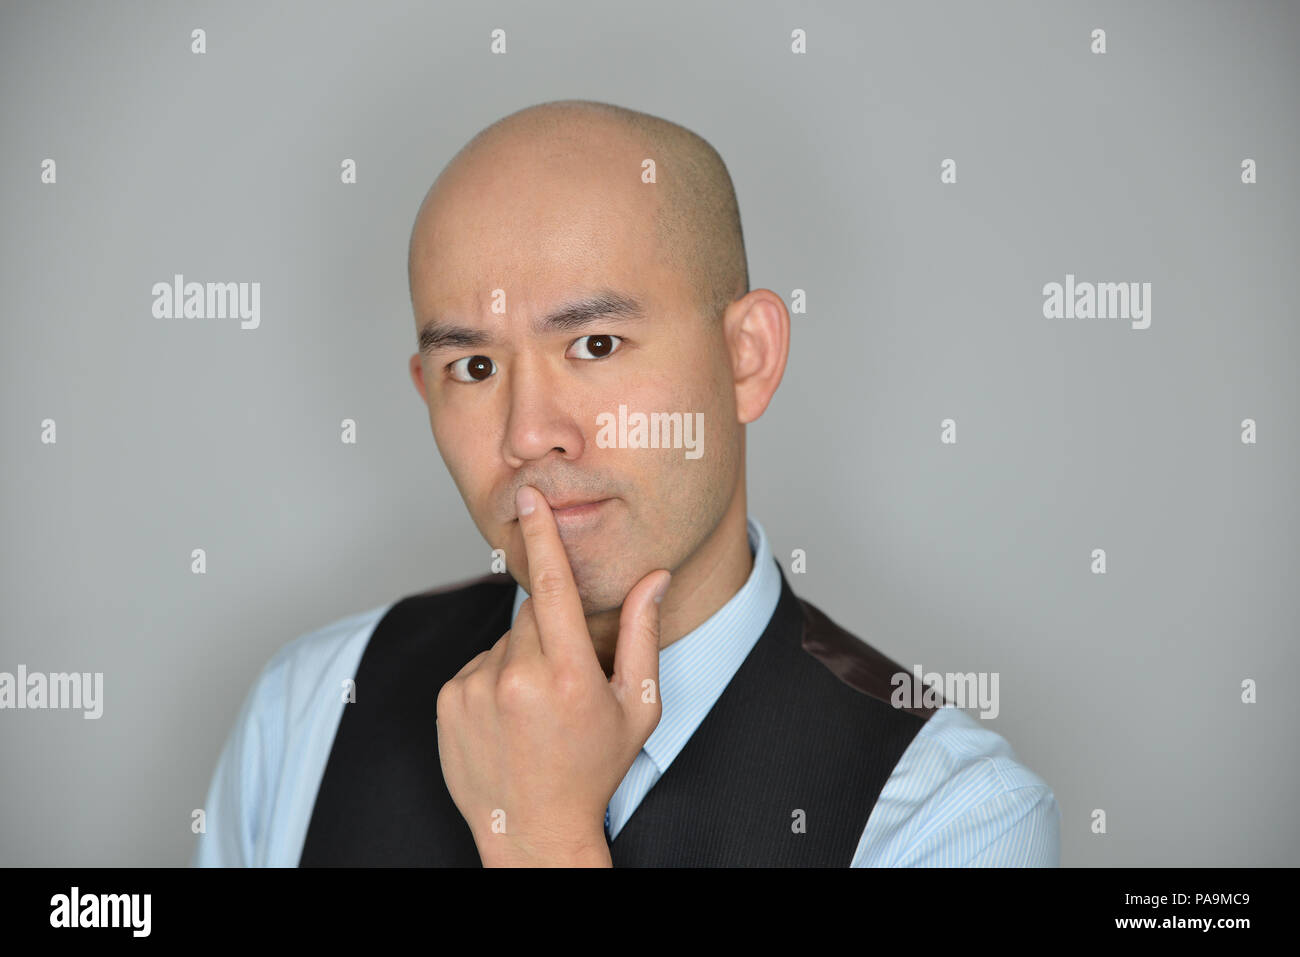 Businessman Confused and Perplexed Expression Isolated on Grey - Stock Image